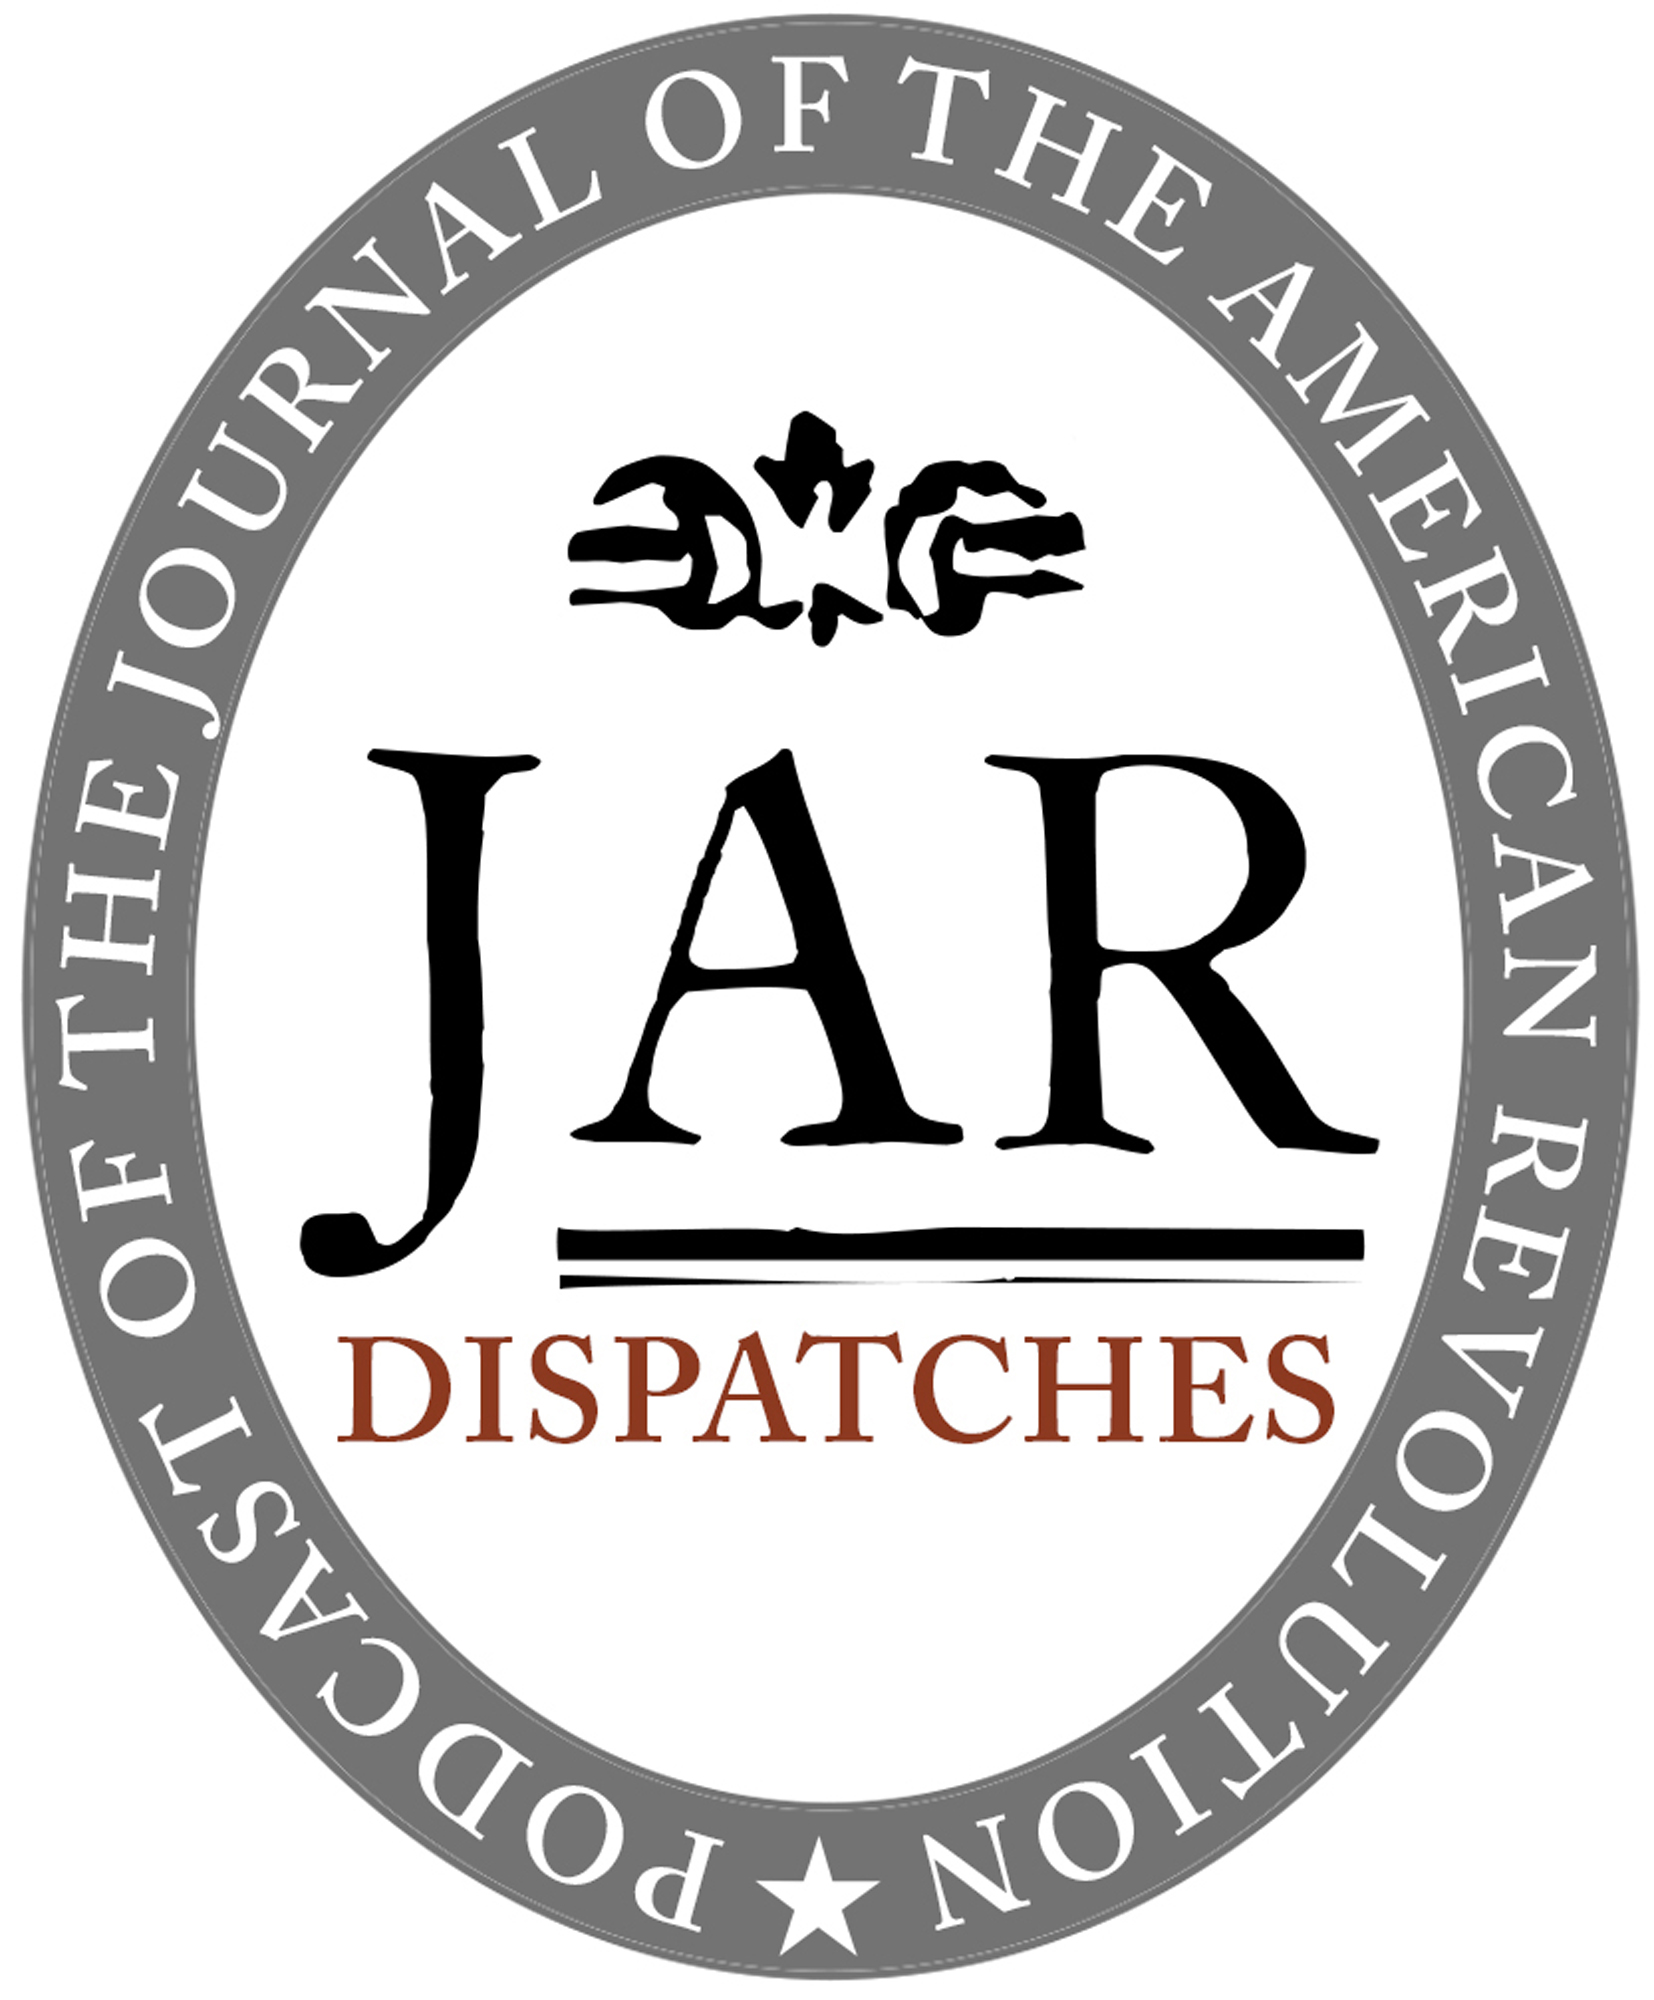 New Podcast for Brady: Tune into Dispatches: The Podcast of the Journal of the American Revolution!